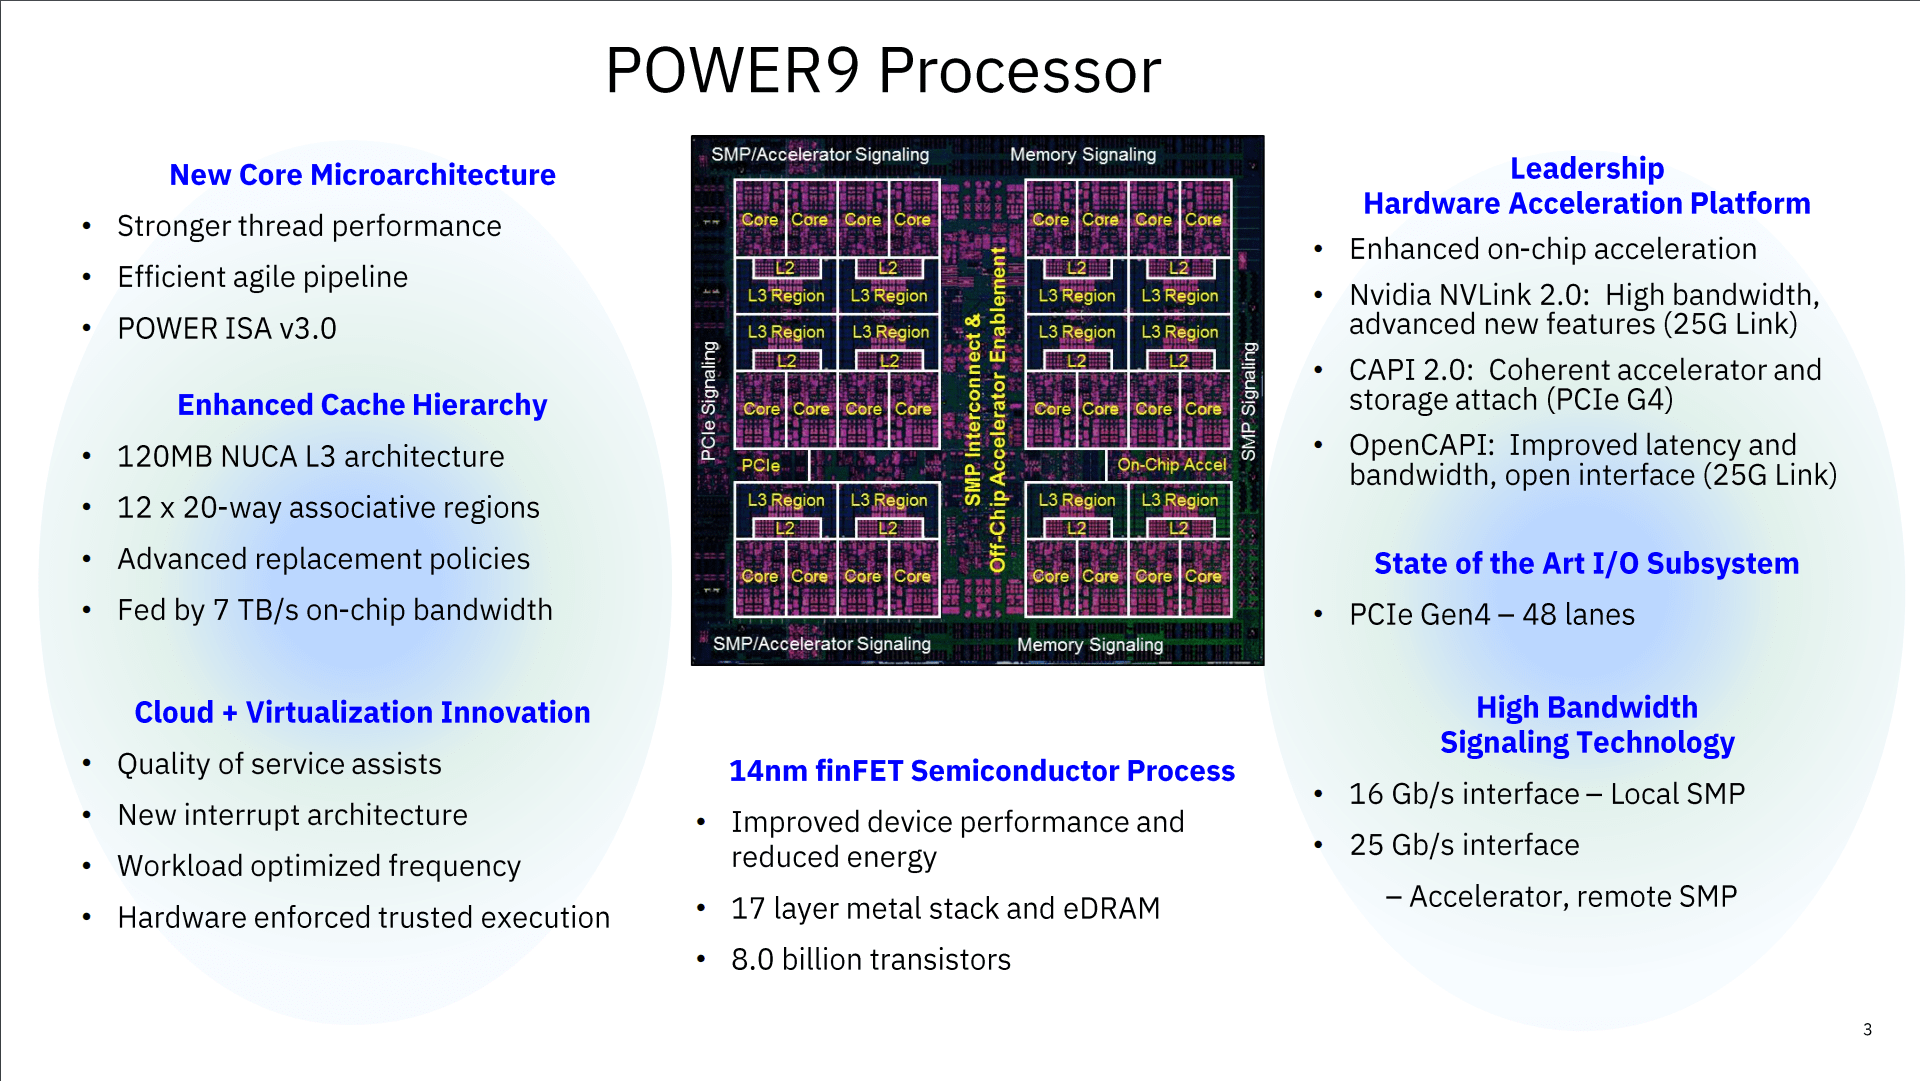 IBM POWER8 vs. POWER9 Comparison for 2020